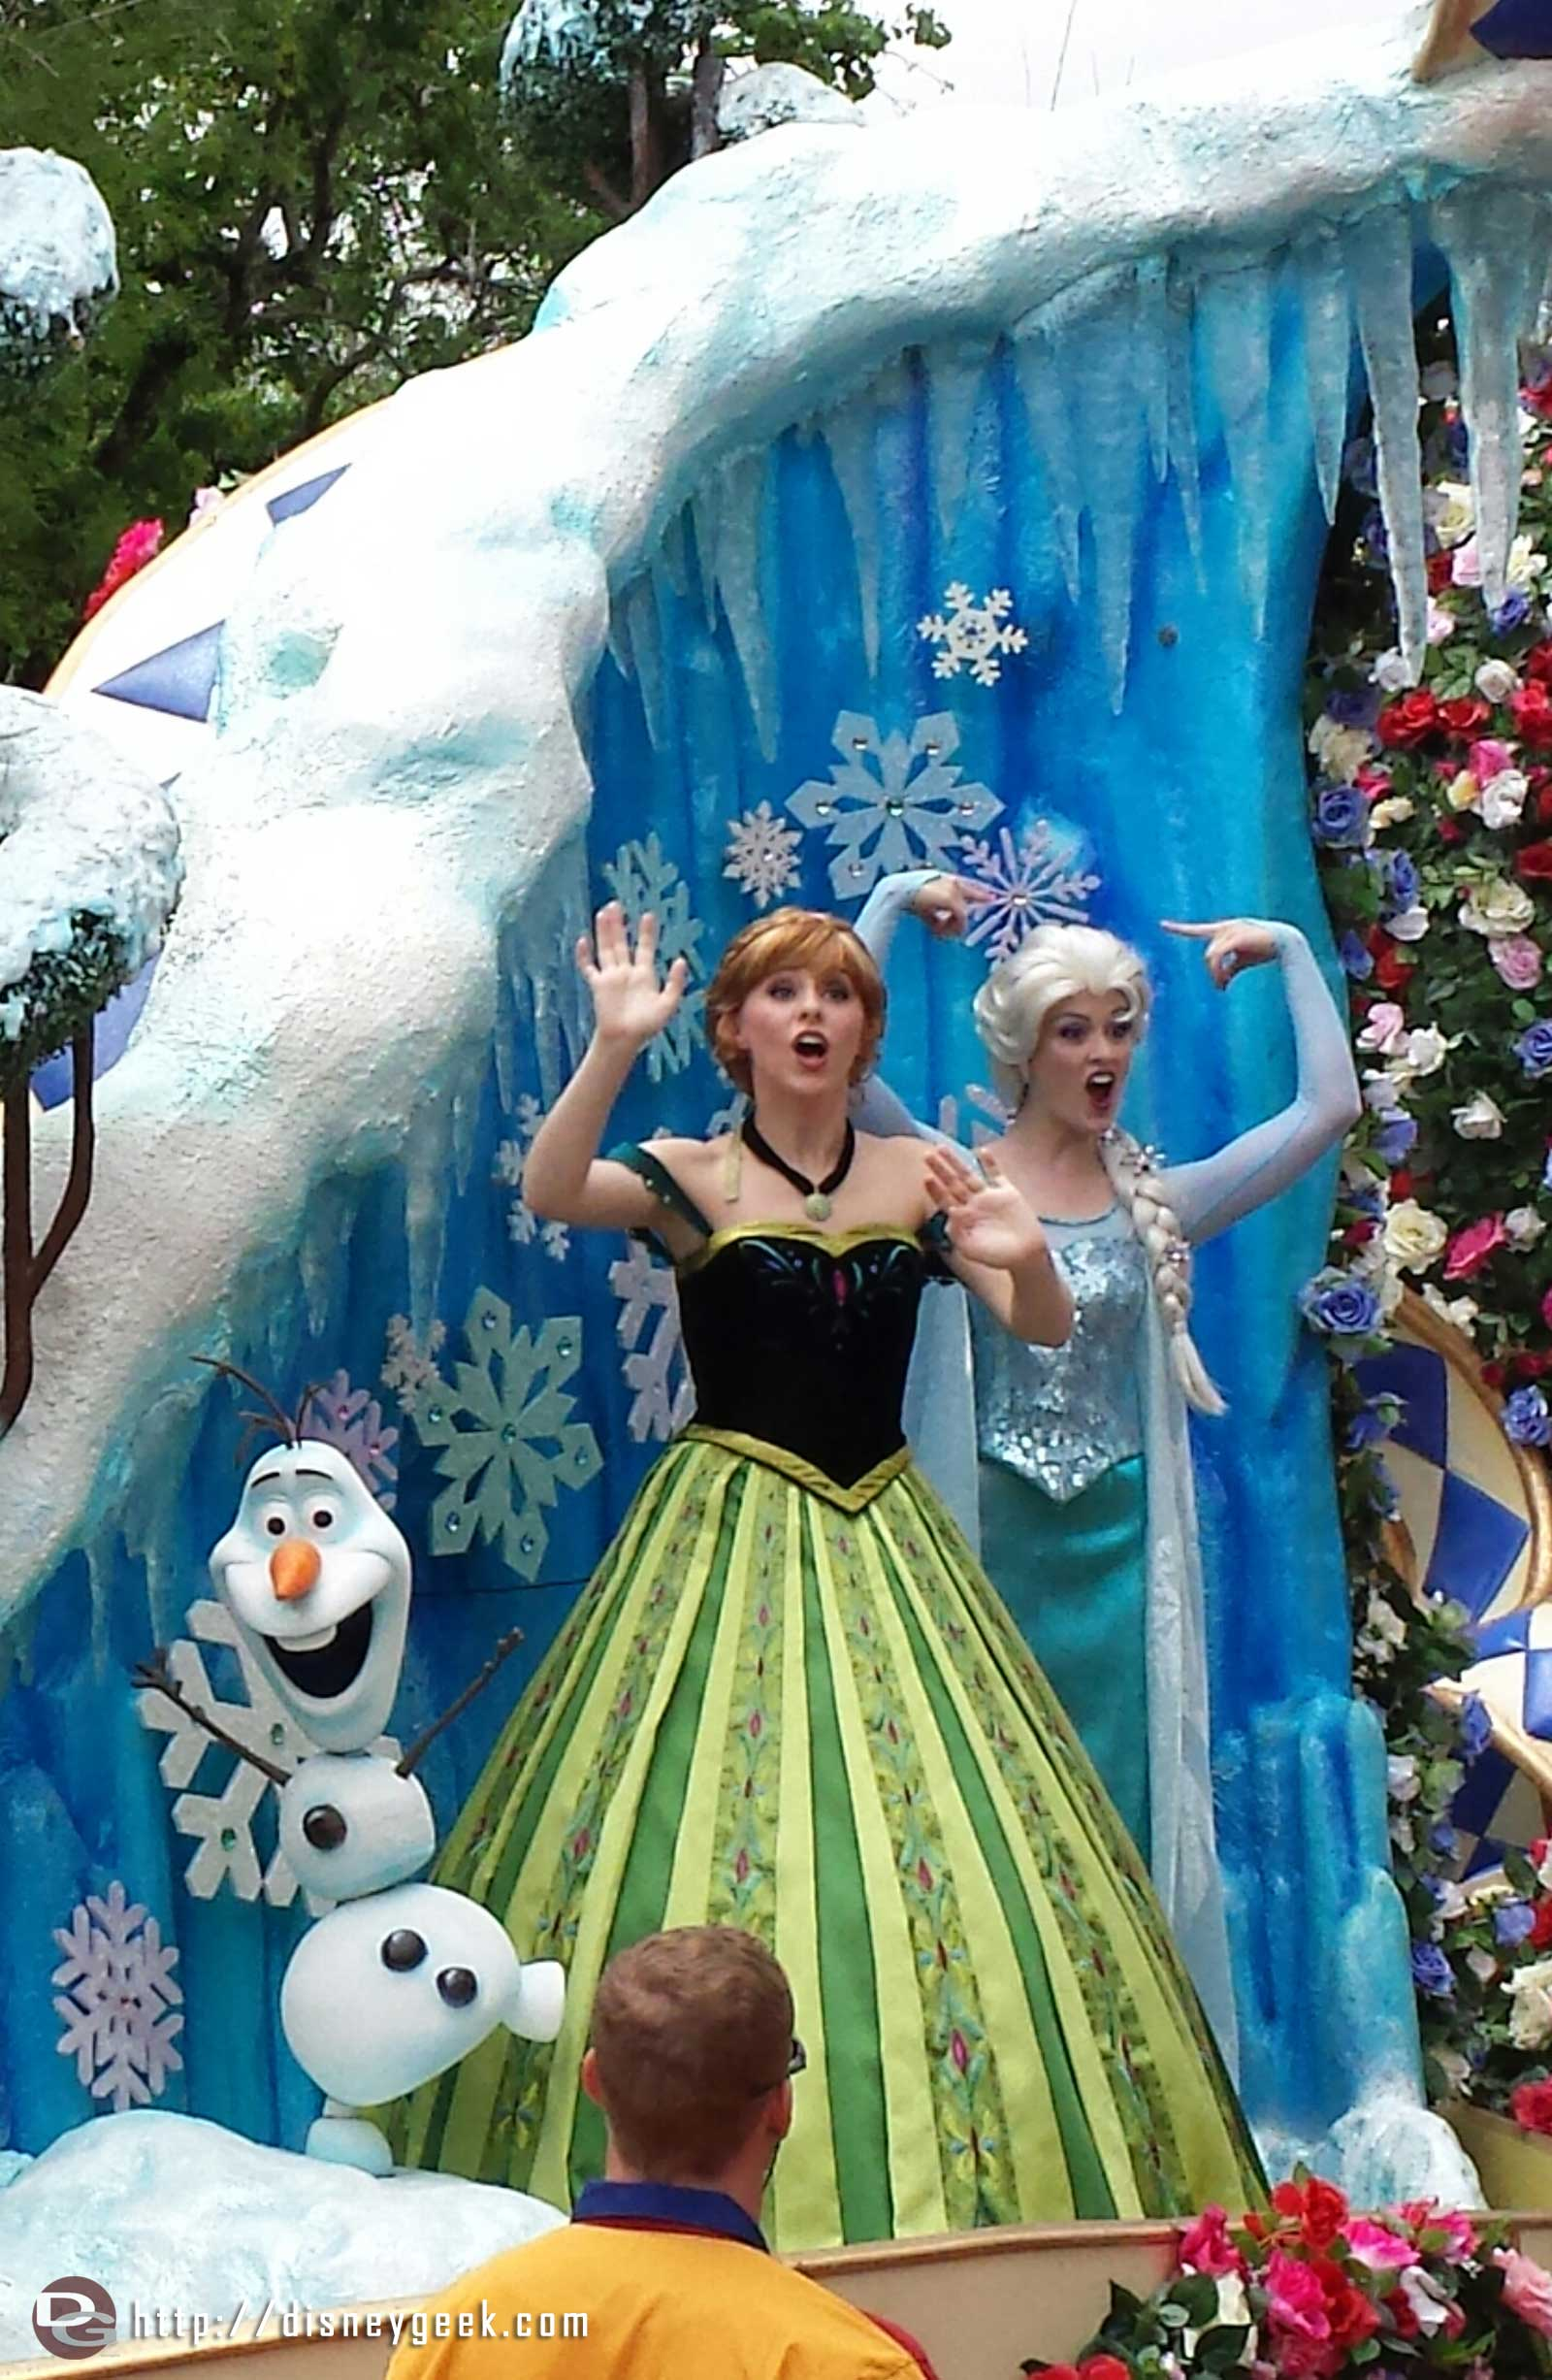 Anna & Elsa in the Festival of Fantasy Parade #Frozen